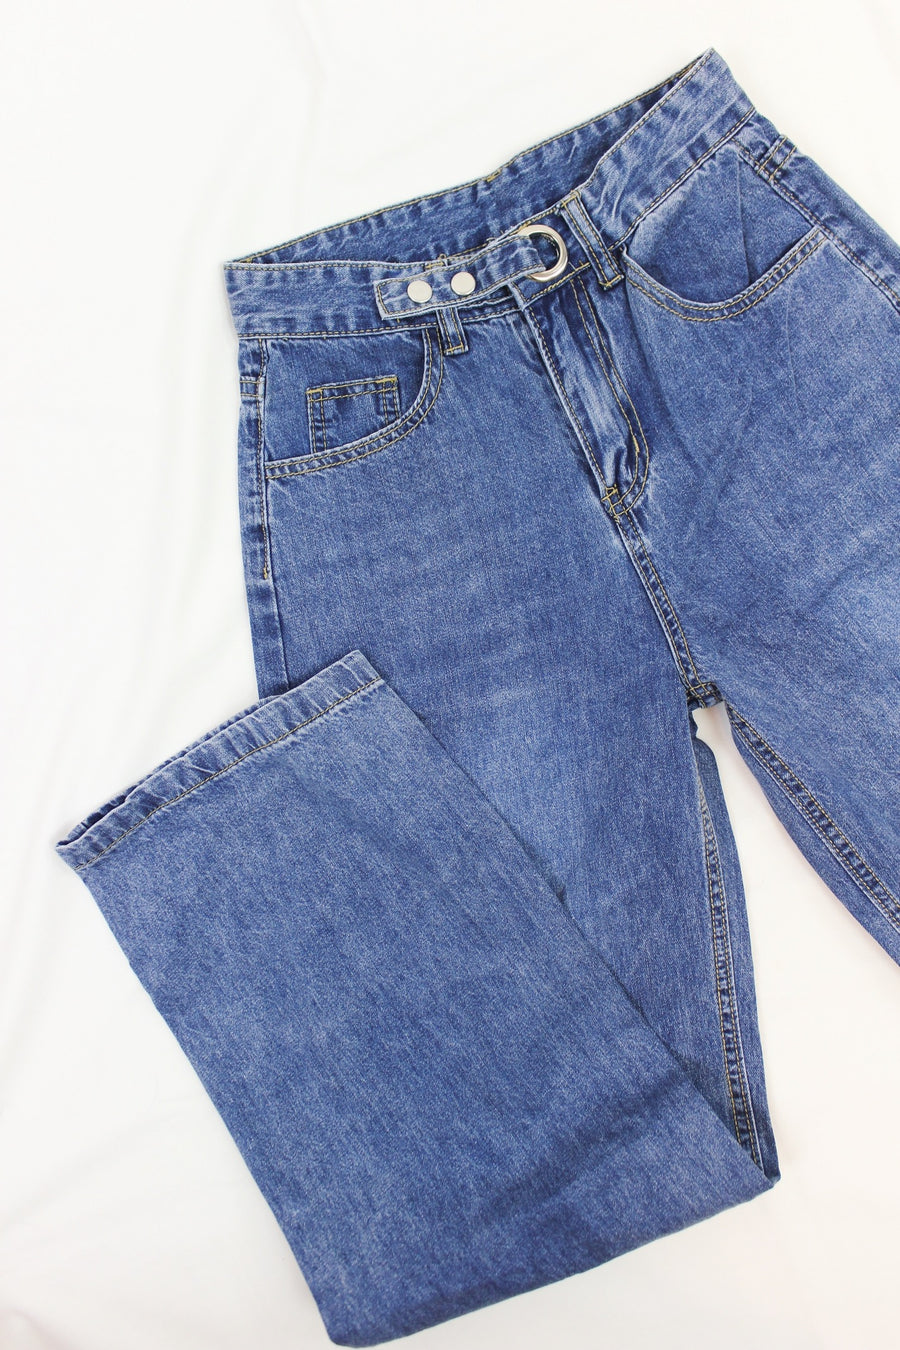 LUCKY DENIM JEANS / BLUE